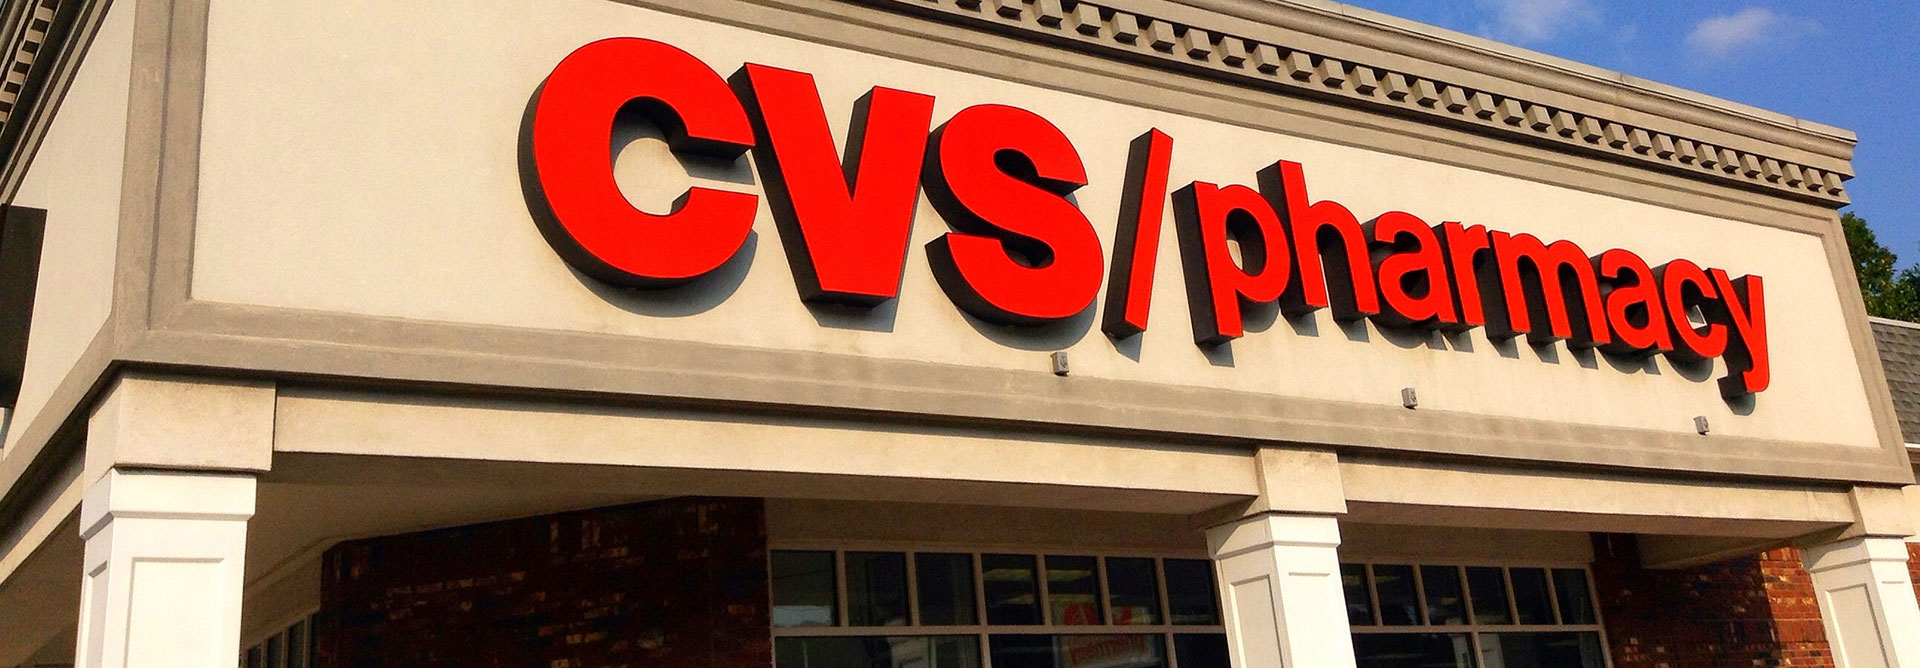 what did cvs u2019 tobacco pullout mean